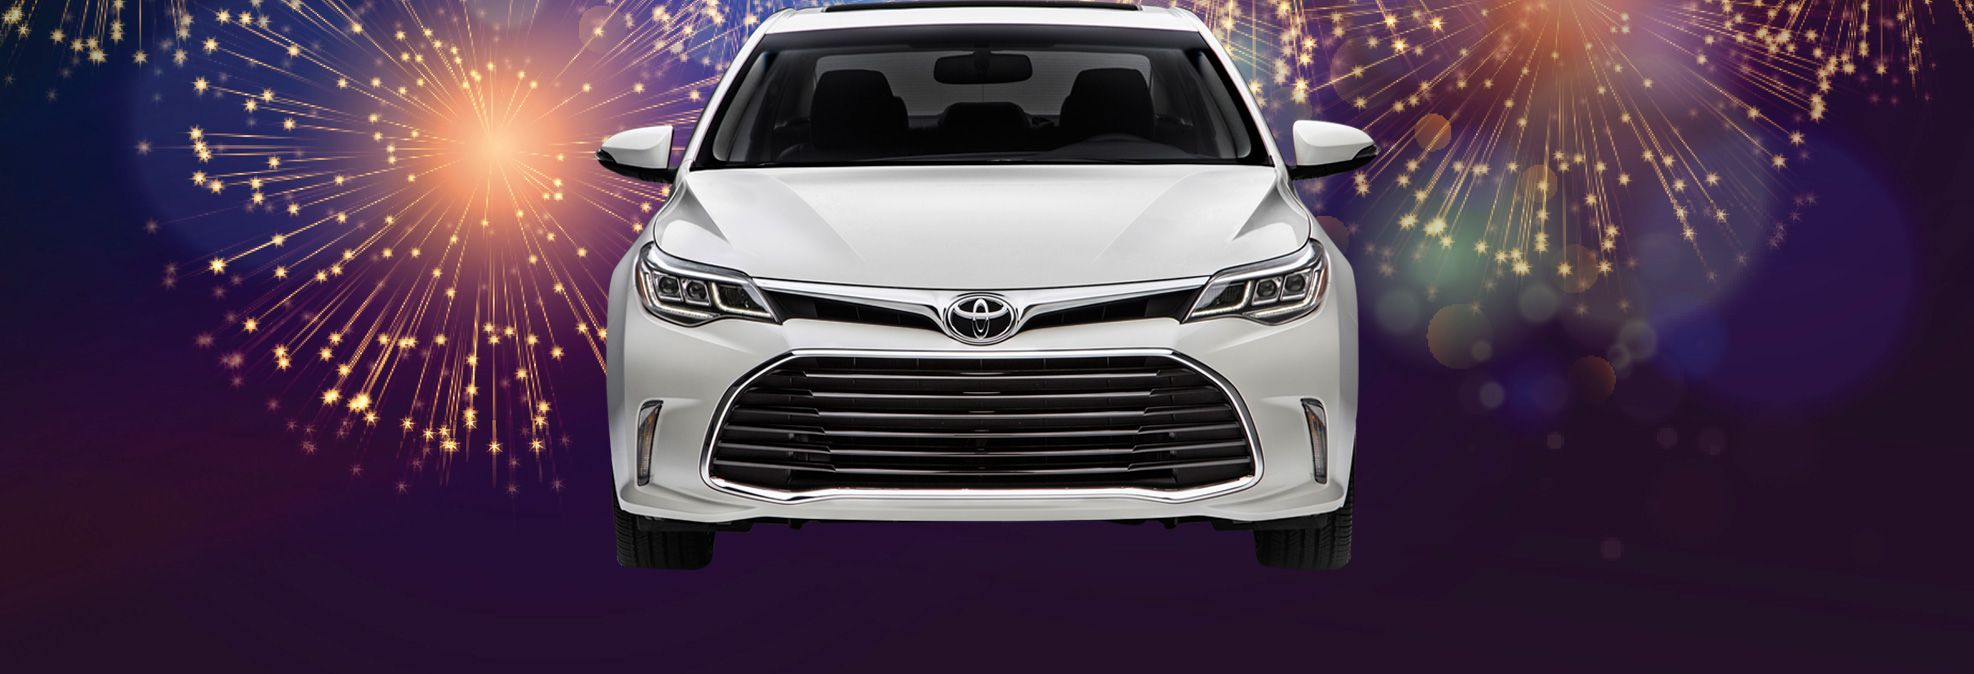 Consumer Reports Highlights The Best Deals On Good American Made Cars For July 4th Toyota Avalonconsumer